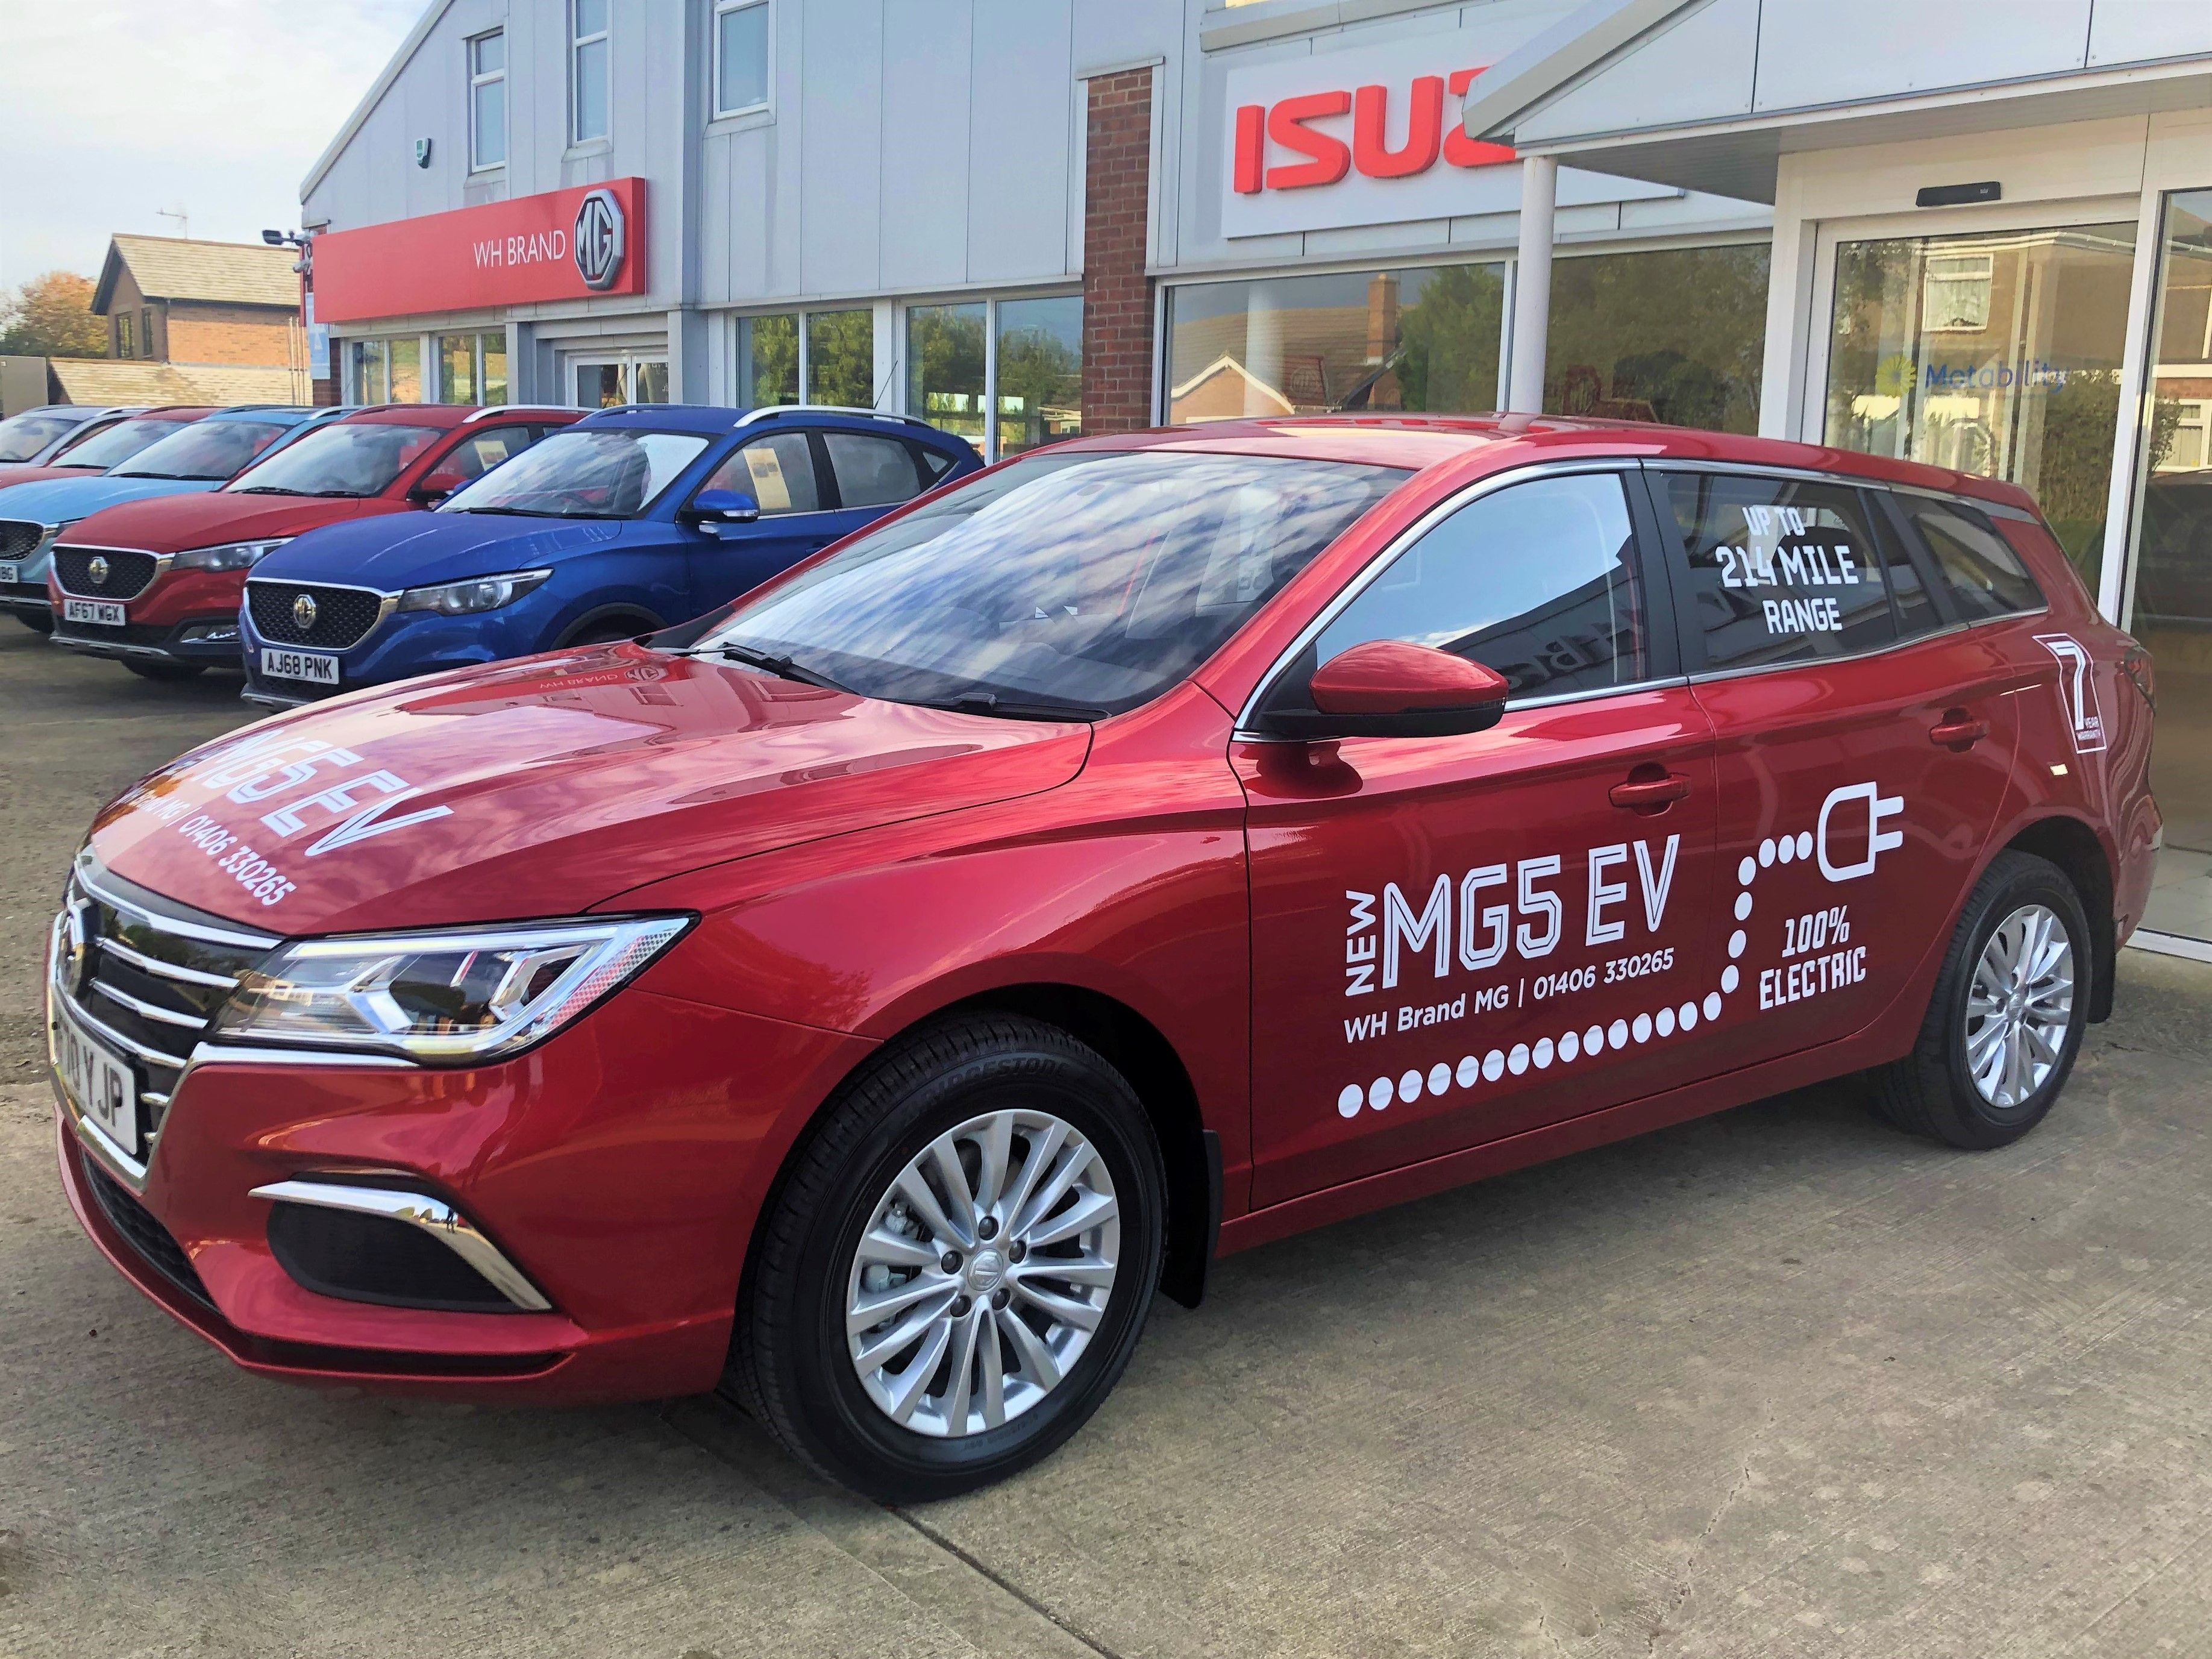 The All-New MG5 EV is here!